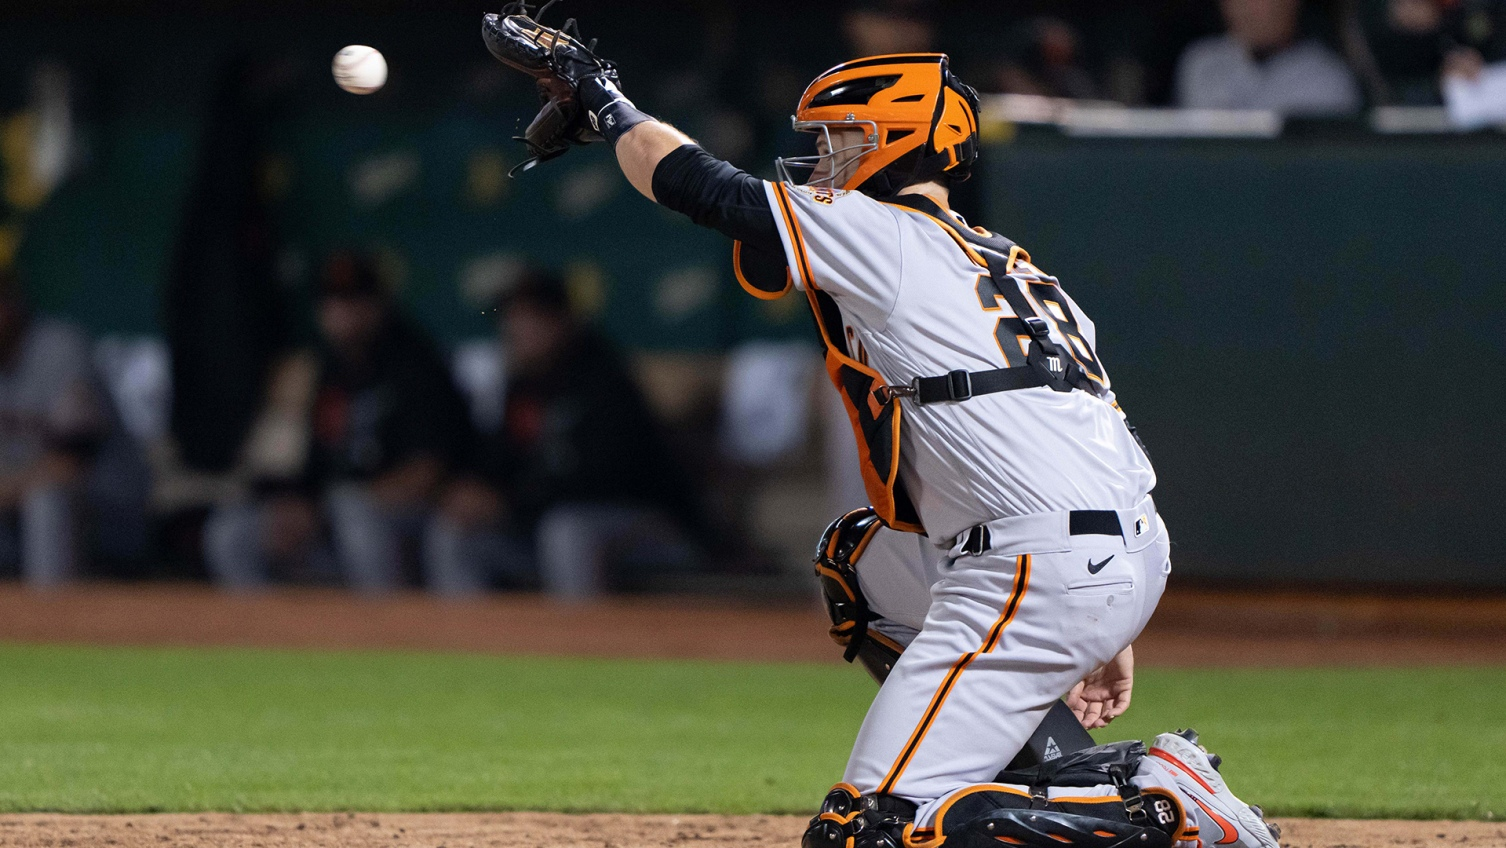 Giants' Posey out, Crawford in lineup day after injuries